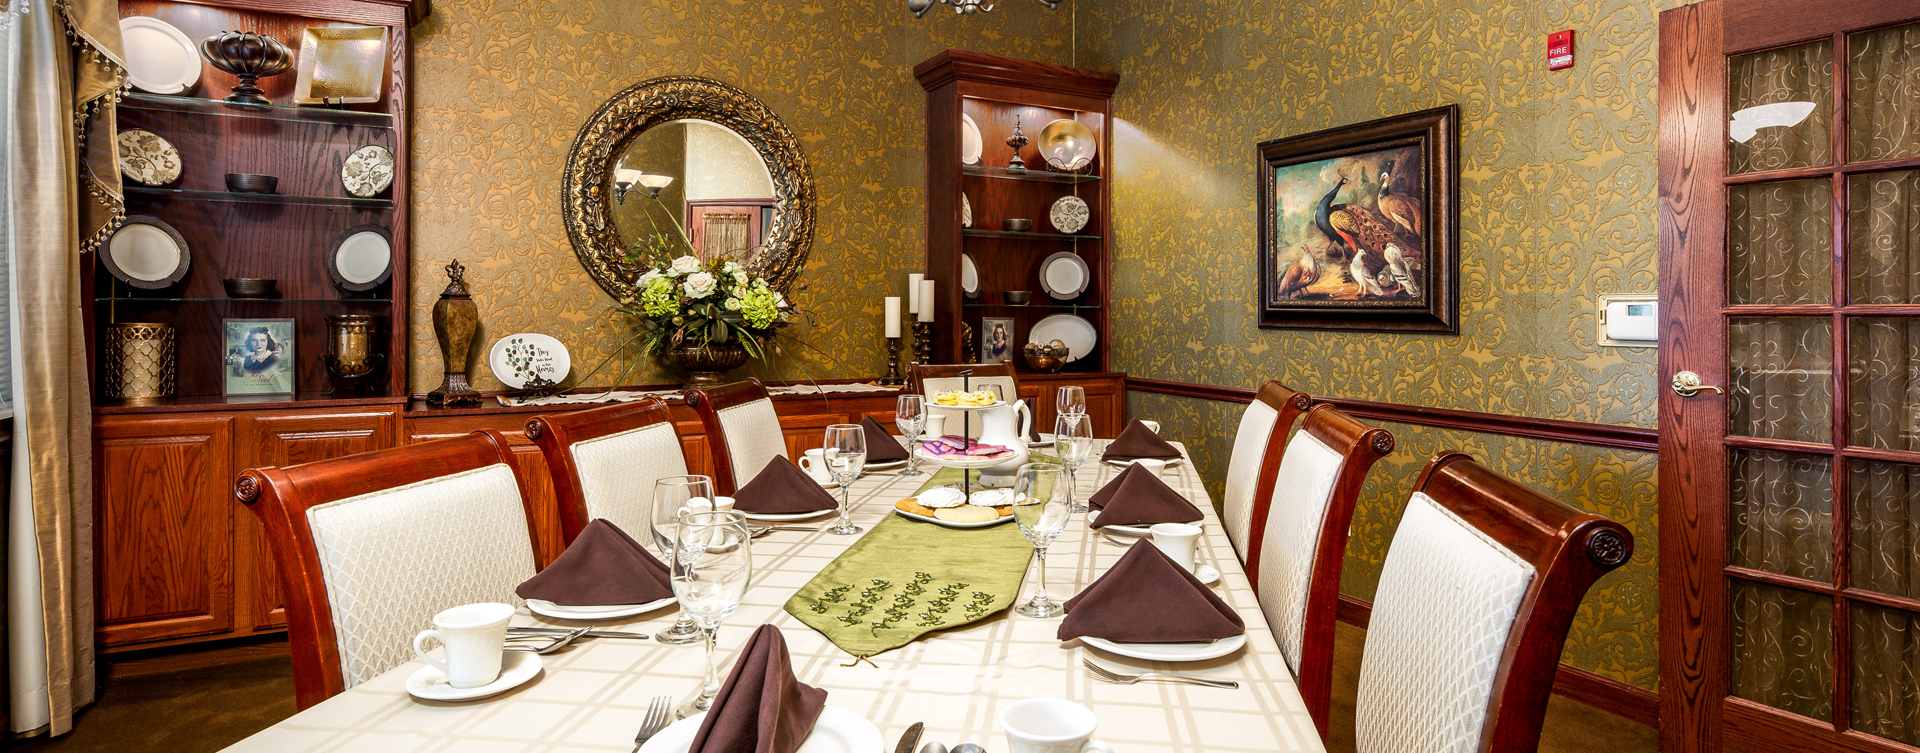 Food is best when shared with family and friends in the private dining room at Bickford of Battle Creek